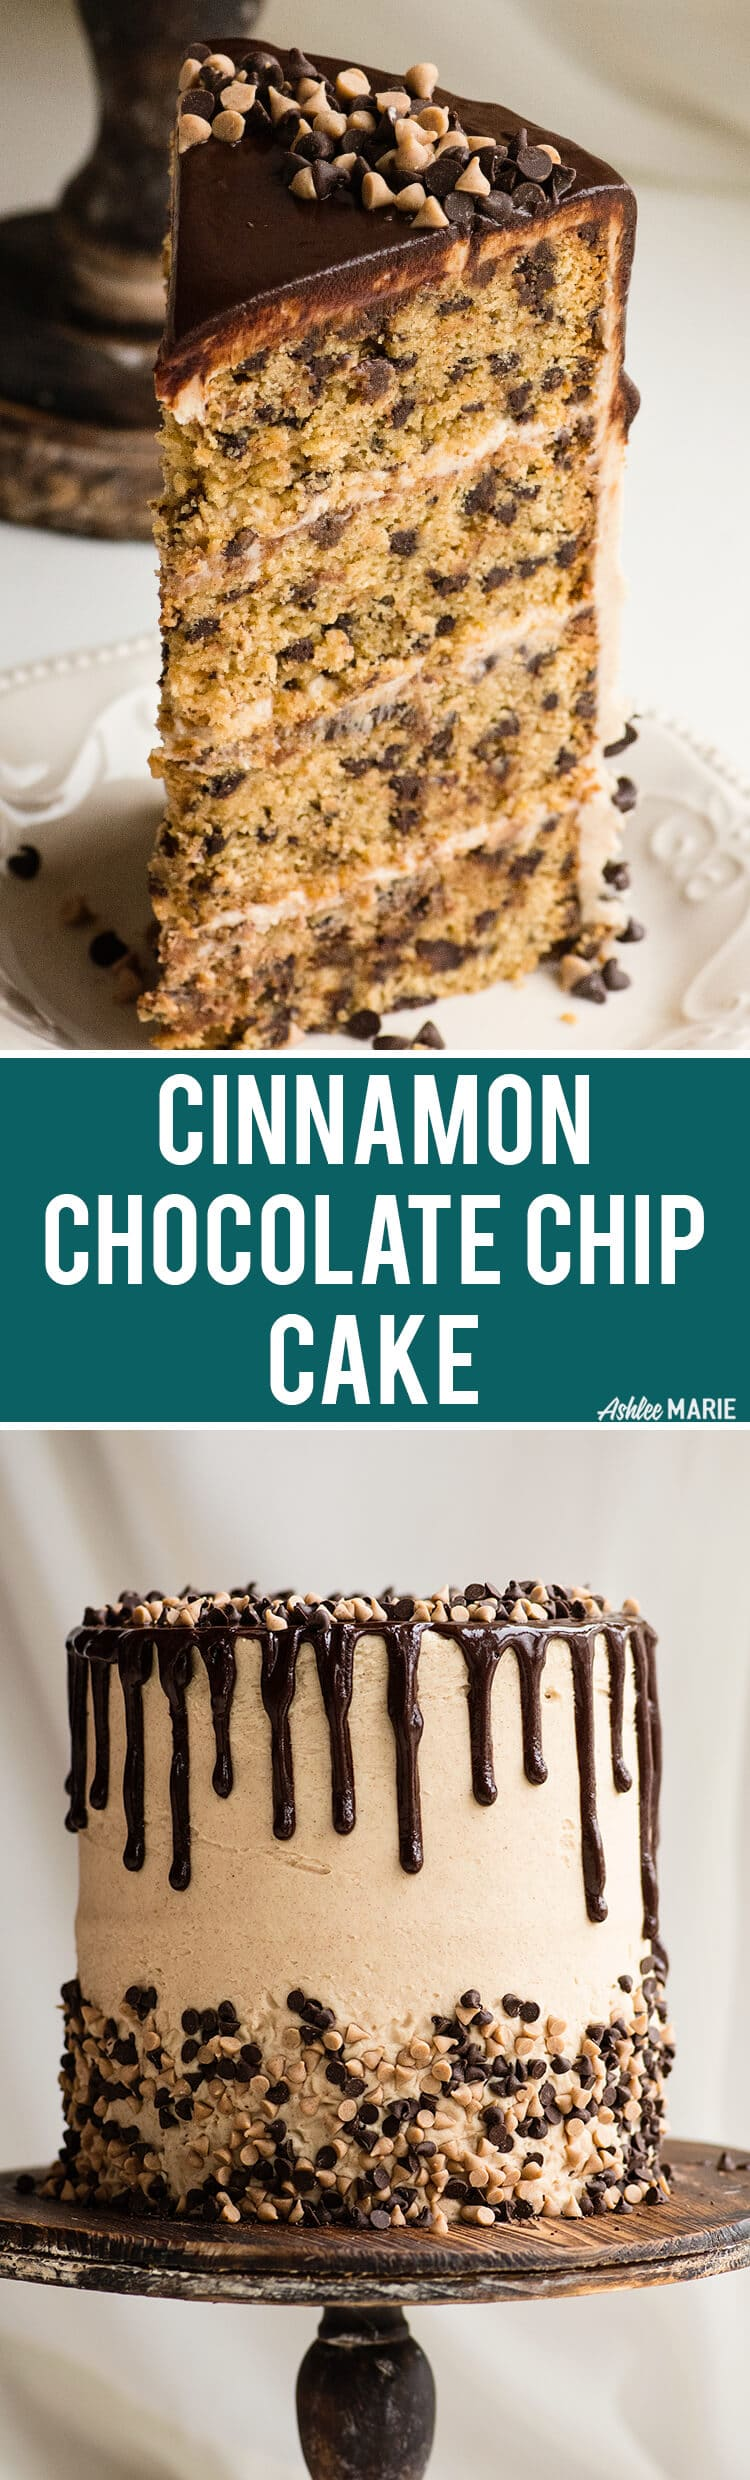 cinnamon chocolate chip cake recipe video with brown sugar cream cheese frosting